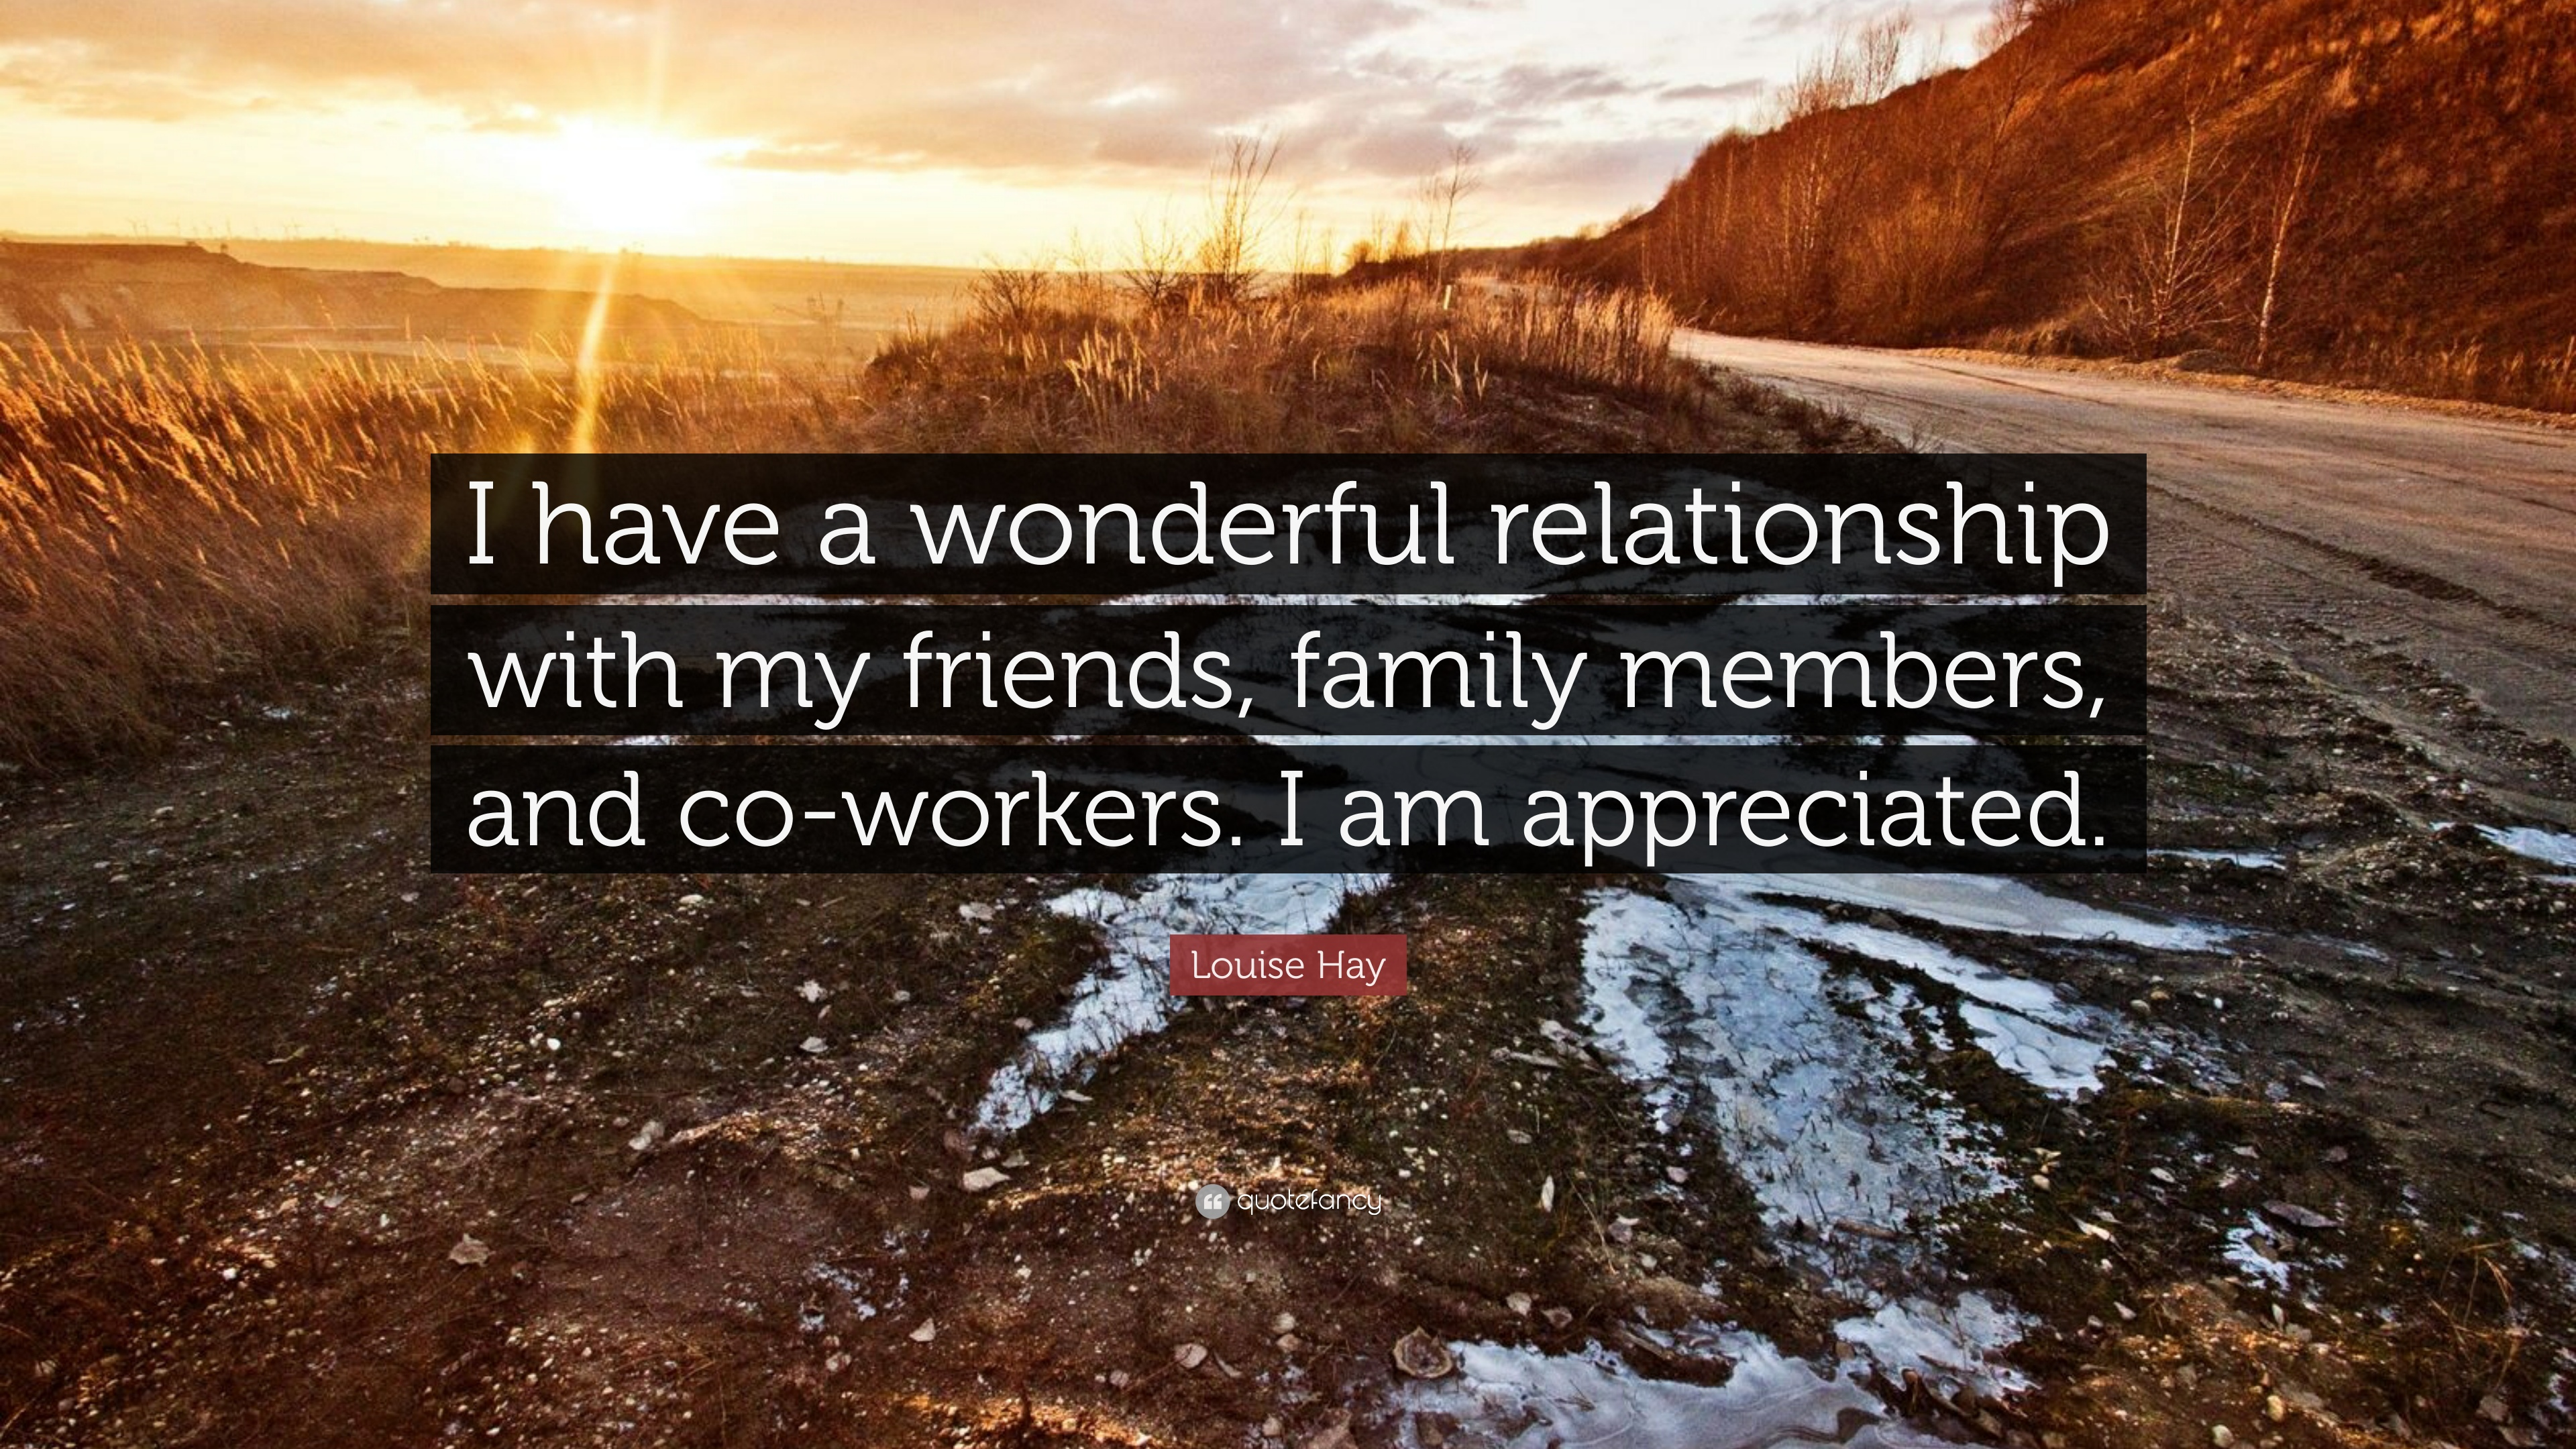 louise hay quote i have a wonderful relationship with my friends